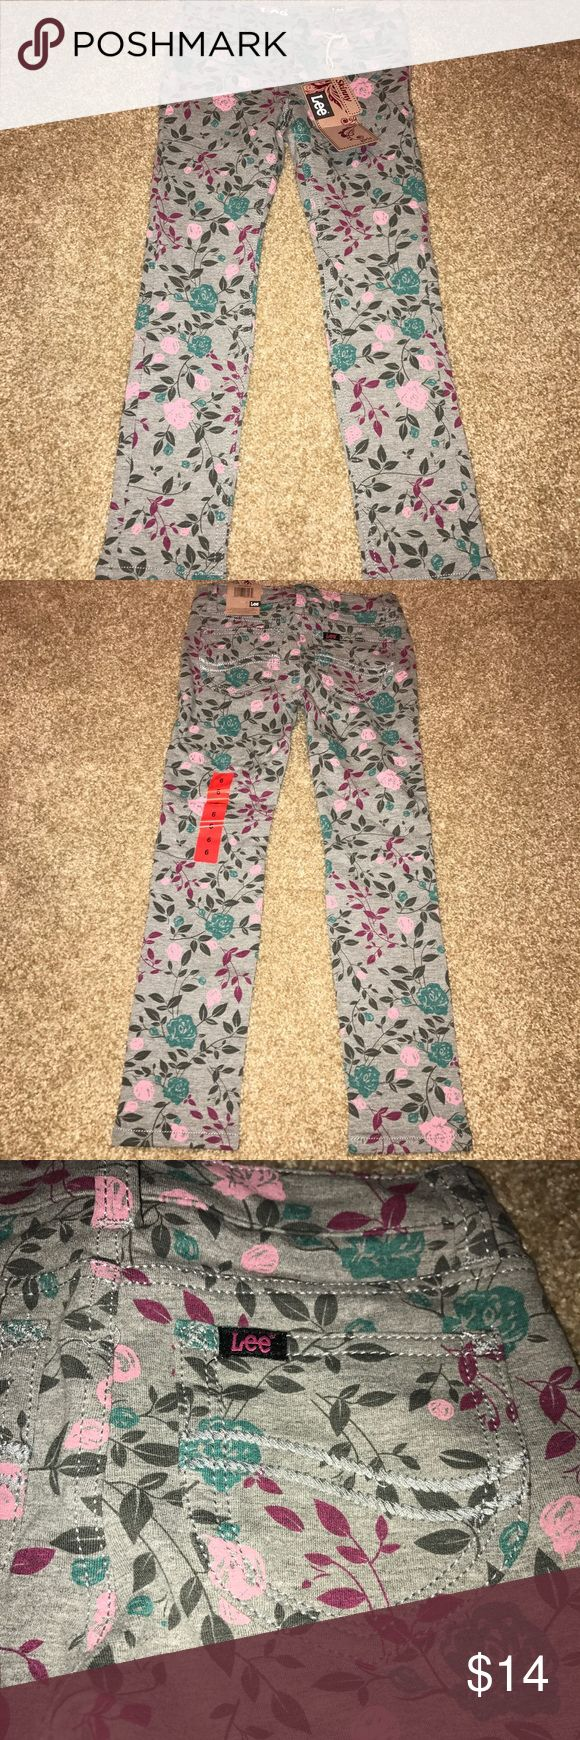 Lee Floral Skinny Stretch Jegging Pants Size 6 Lee Floral Skinny Super Stretch Jegging Pants Girls Size 6. Gray/Pink/Teal. Adjustable waist. 53% cotton 42% polyester 5% spandex. BRAND NEW WITH TAGS!! Lee Bottoms Jeans